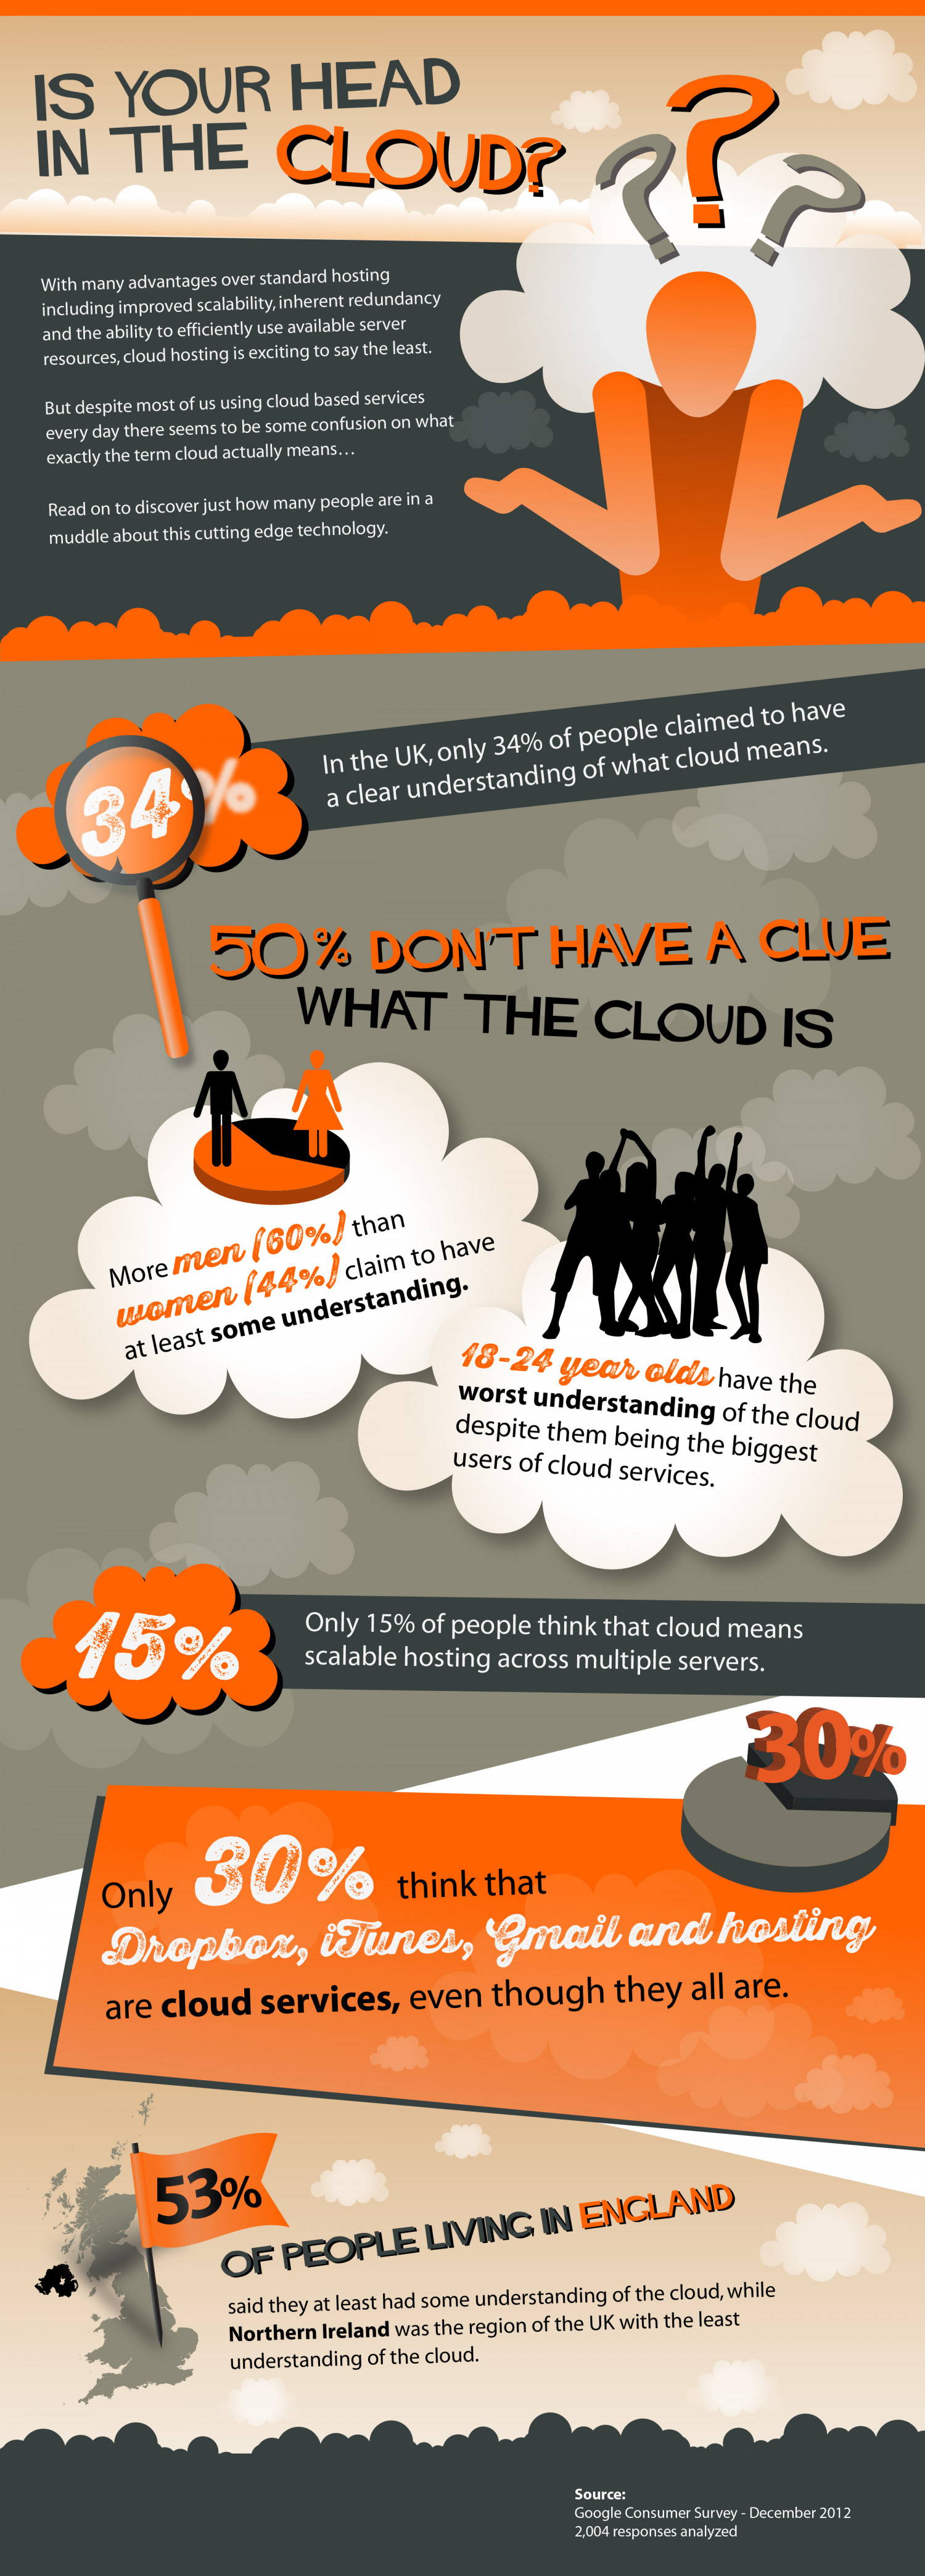 Is Your Head in the Cloud? Infographic